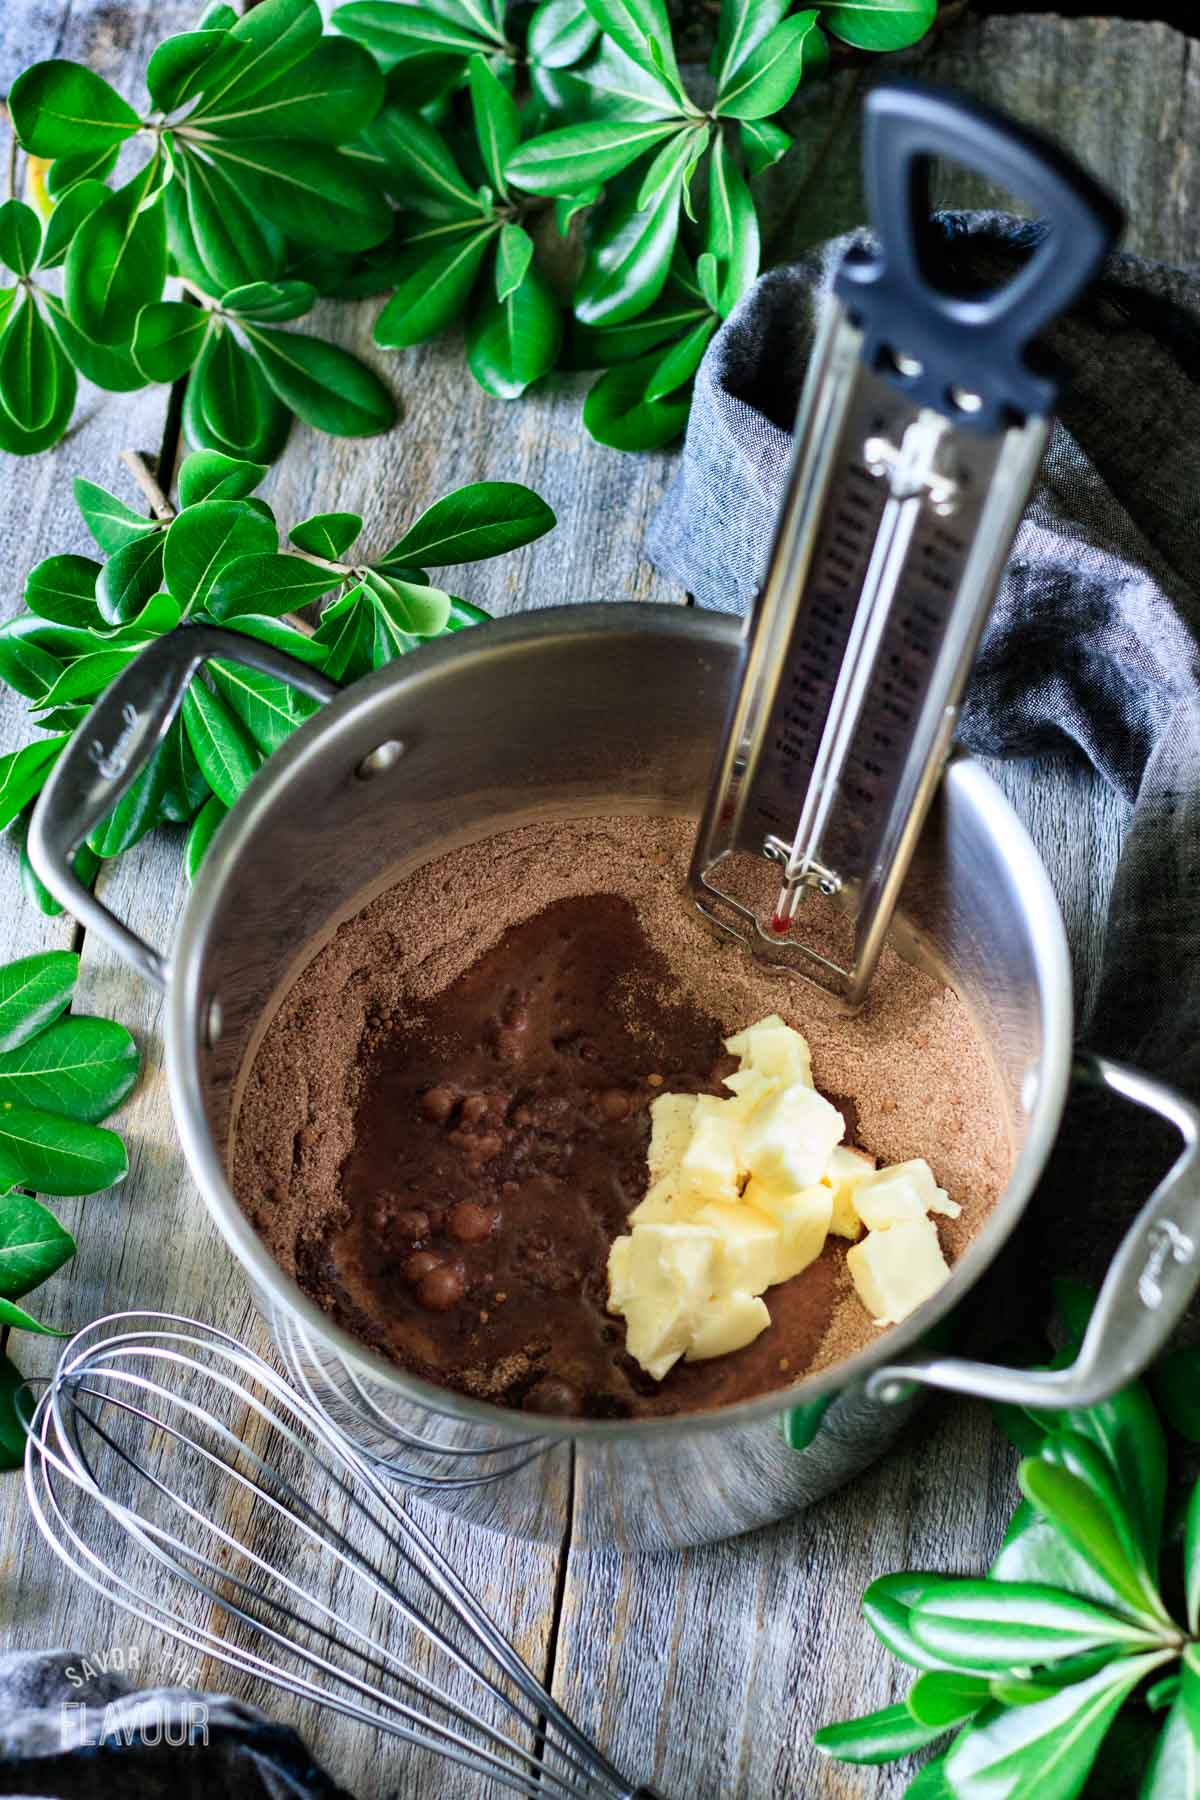 butter, milk, sugar, and cocoa powder mixture in a saucepan